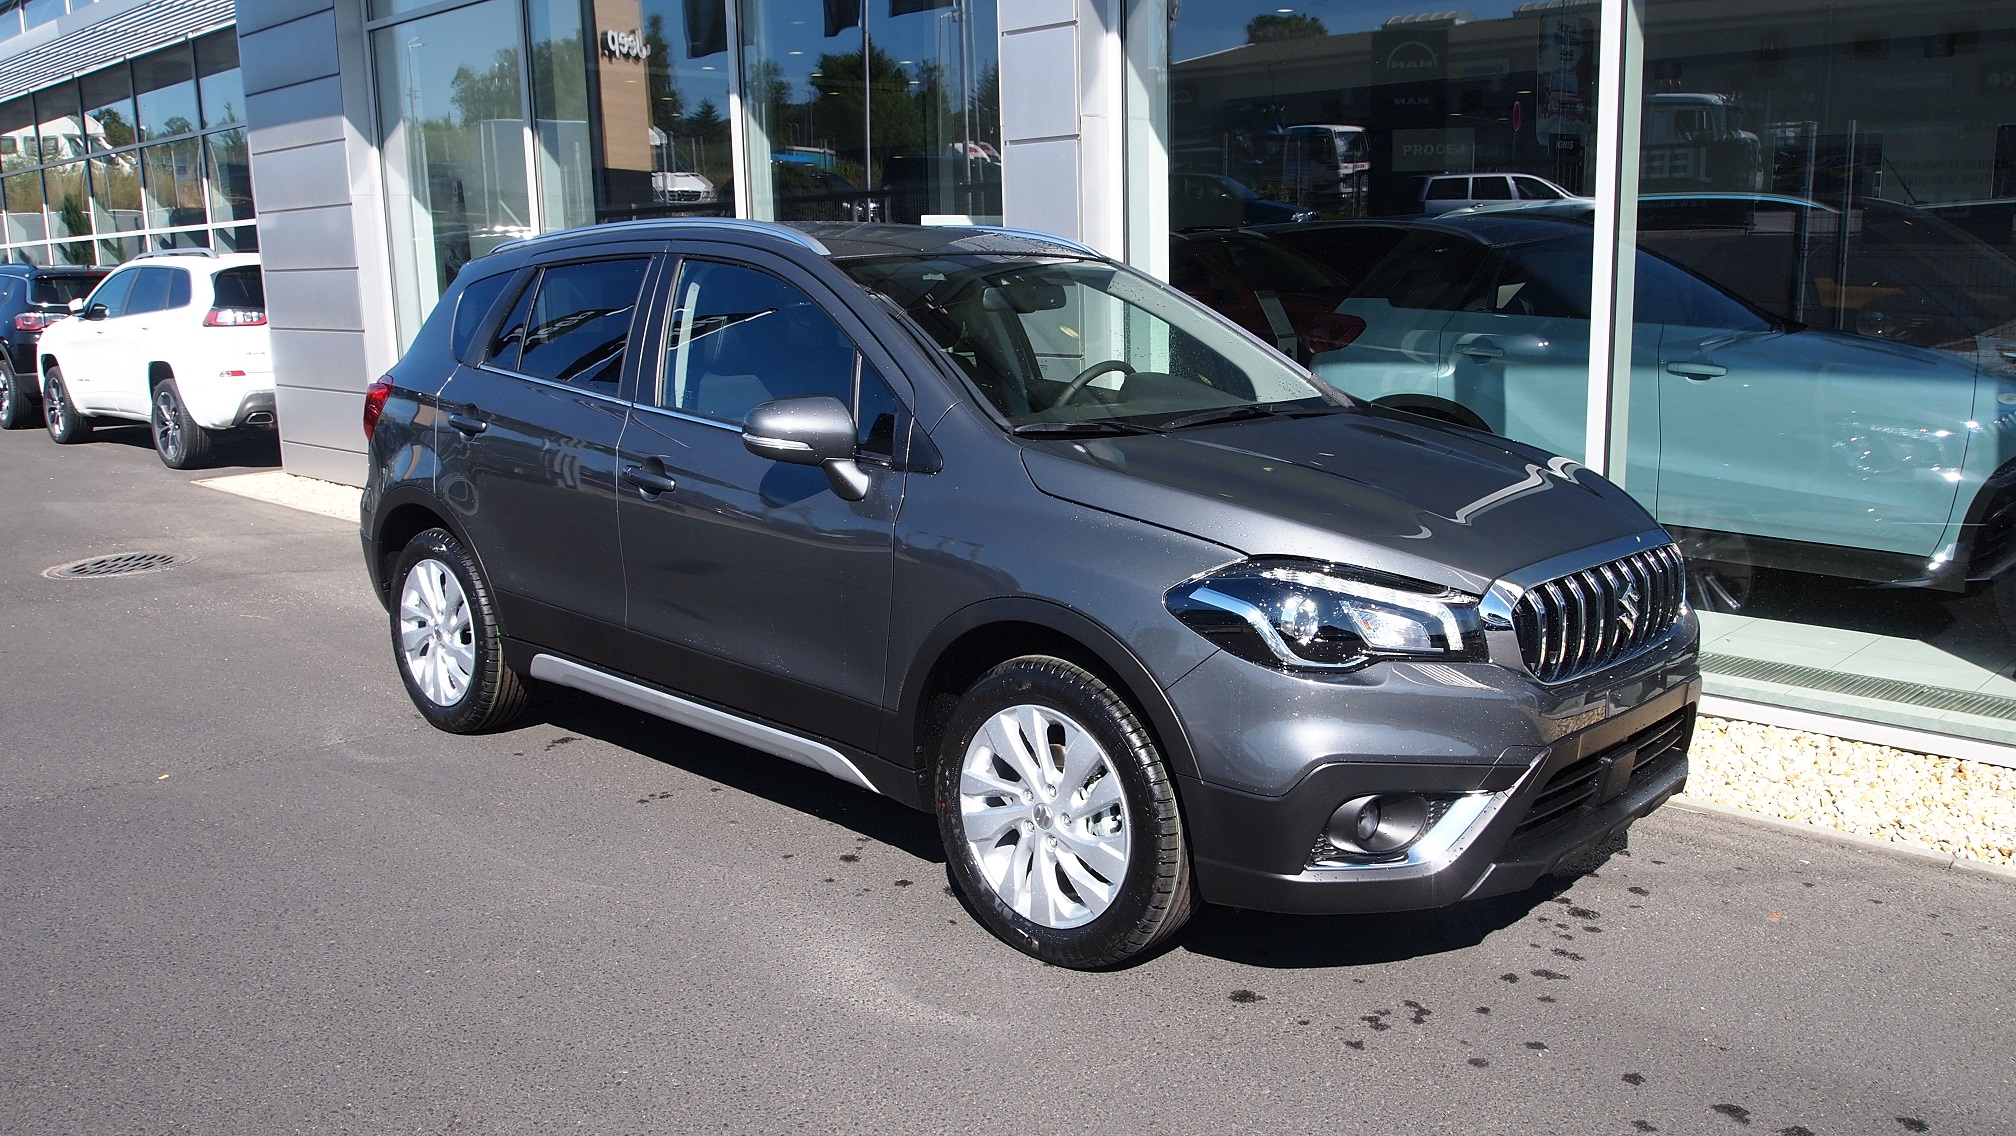 SUZUKI S-CROSS 1,4 BOOSTERJET PREMIUM 4x4 AT